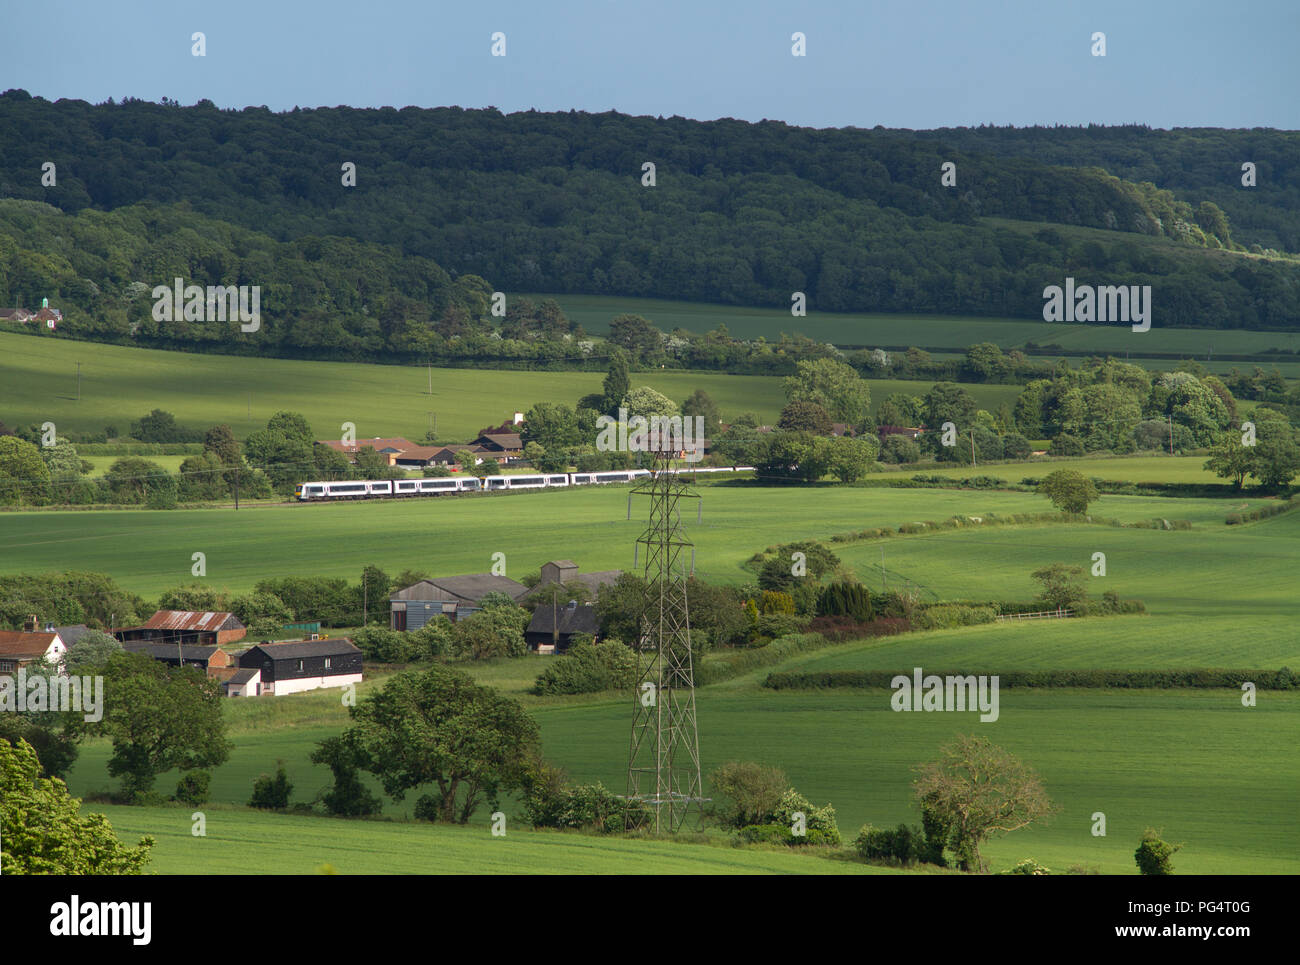 A trio of Chiltern Railways Class 168 Clubman DMUs heads north through the Chiltern Hills in Buckinghamshire, seen from Lodge Hill near Saunderton. - Stock Image